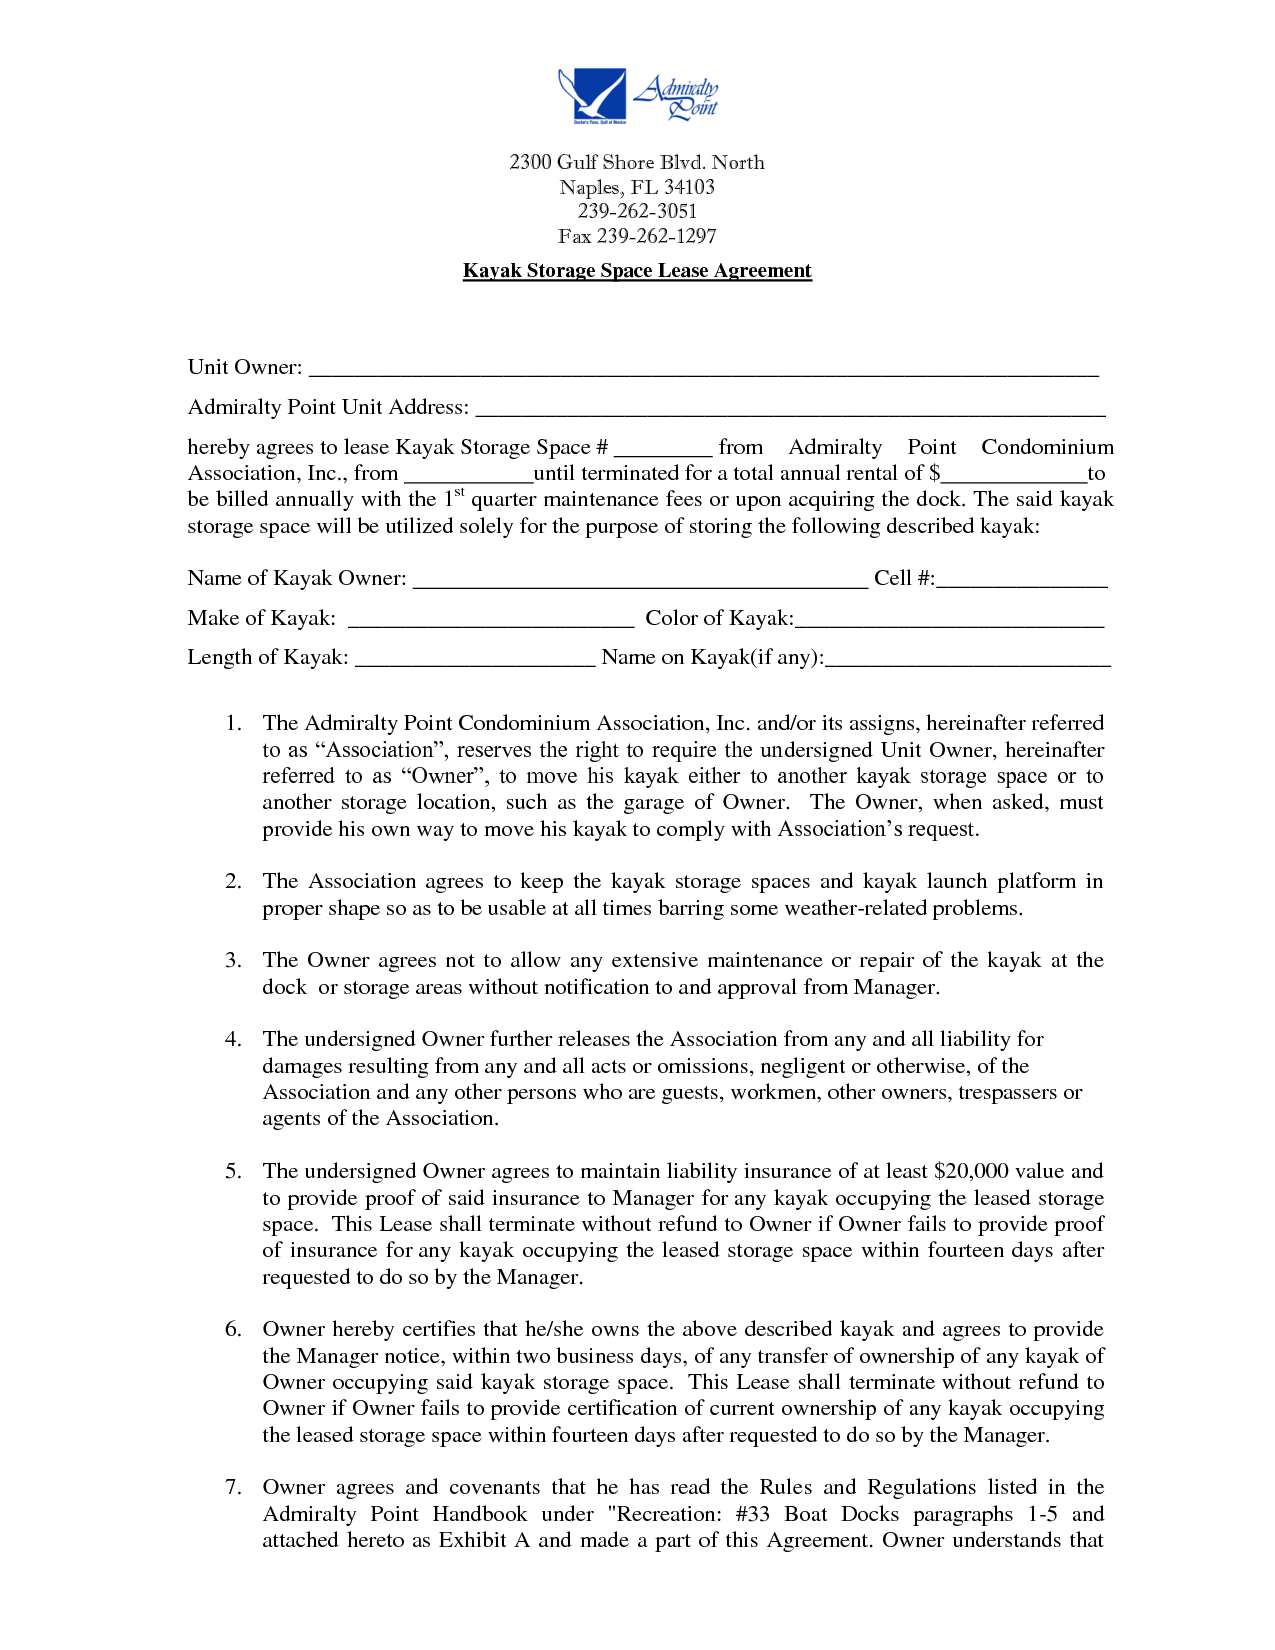 Storage Lease Agreement Contract template, Lease